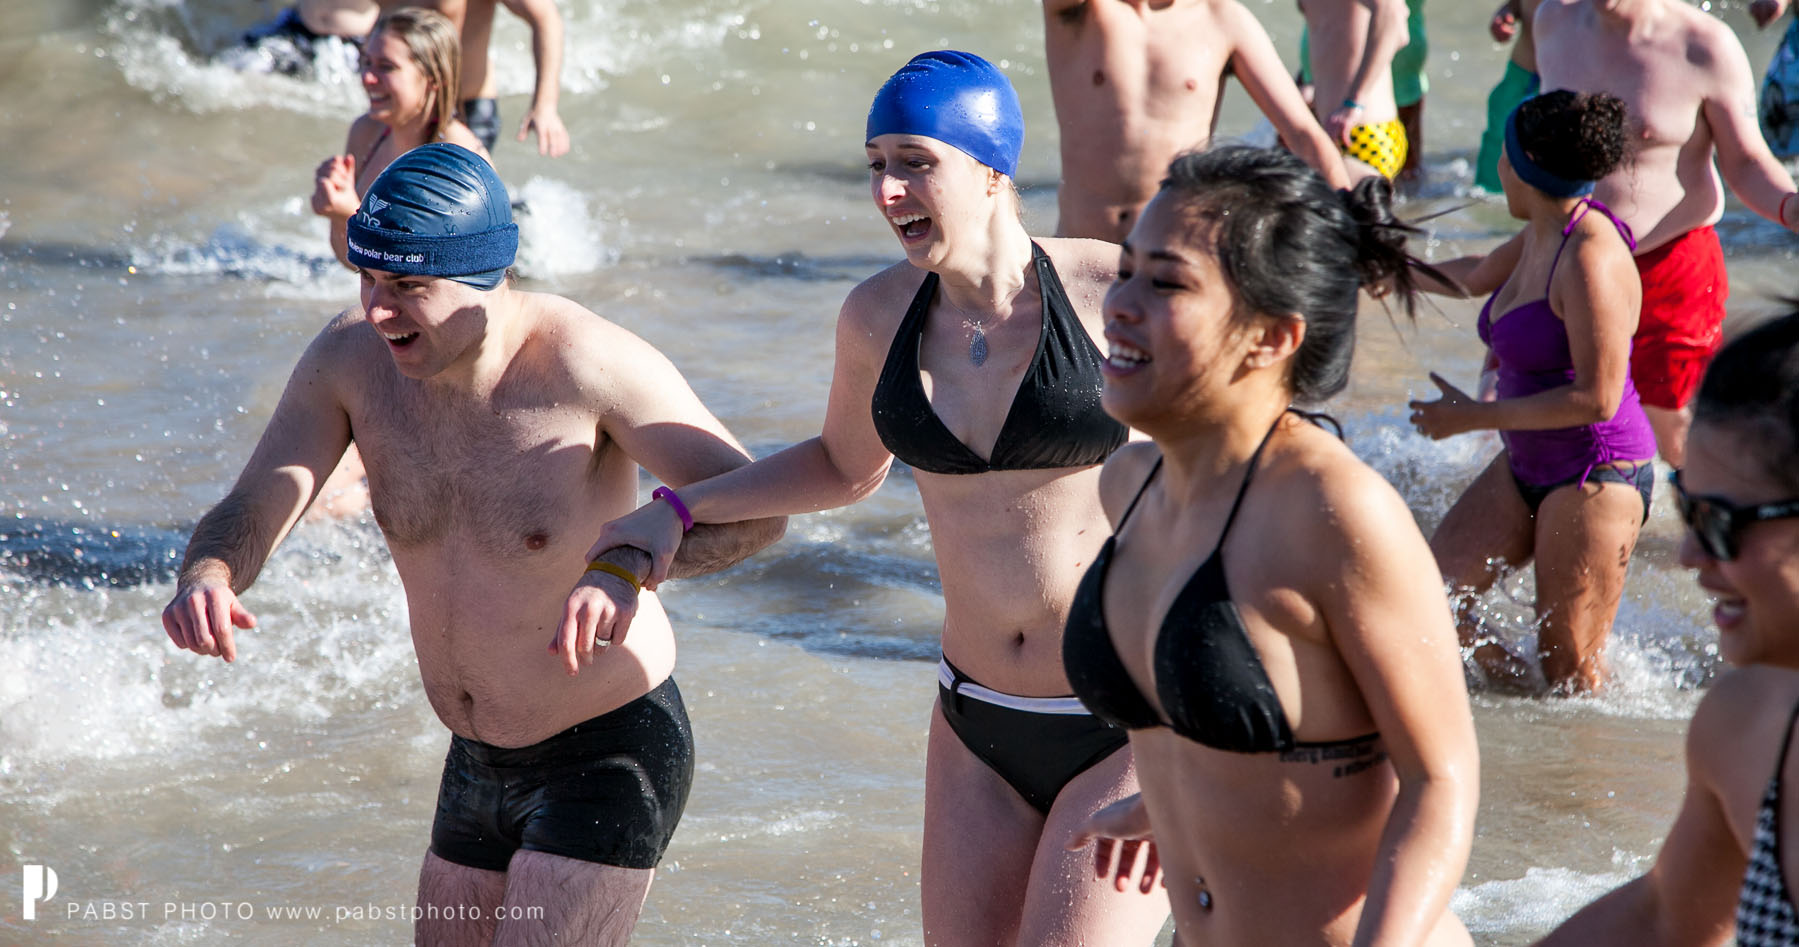 Polar Plunge 2013 Chicago Pabst Photo (35 of 69)